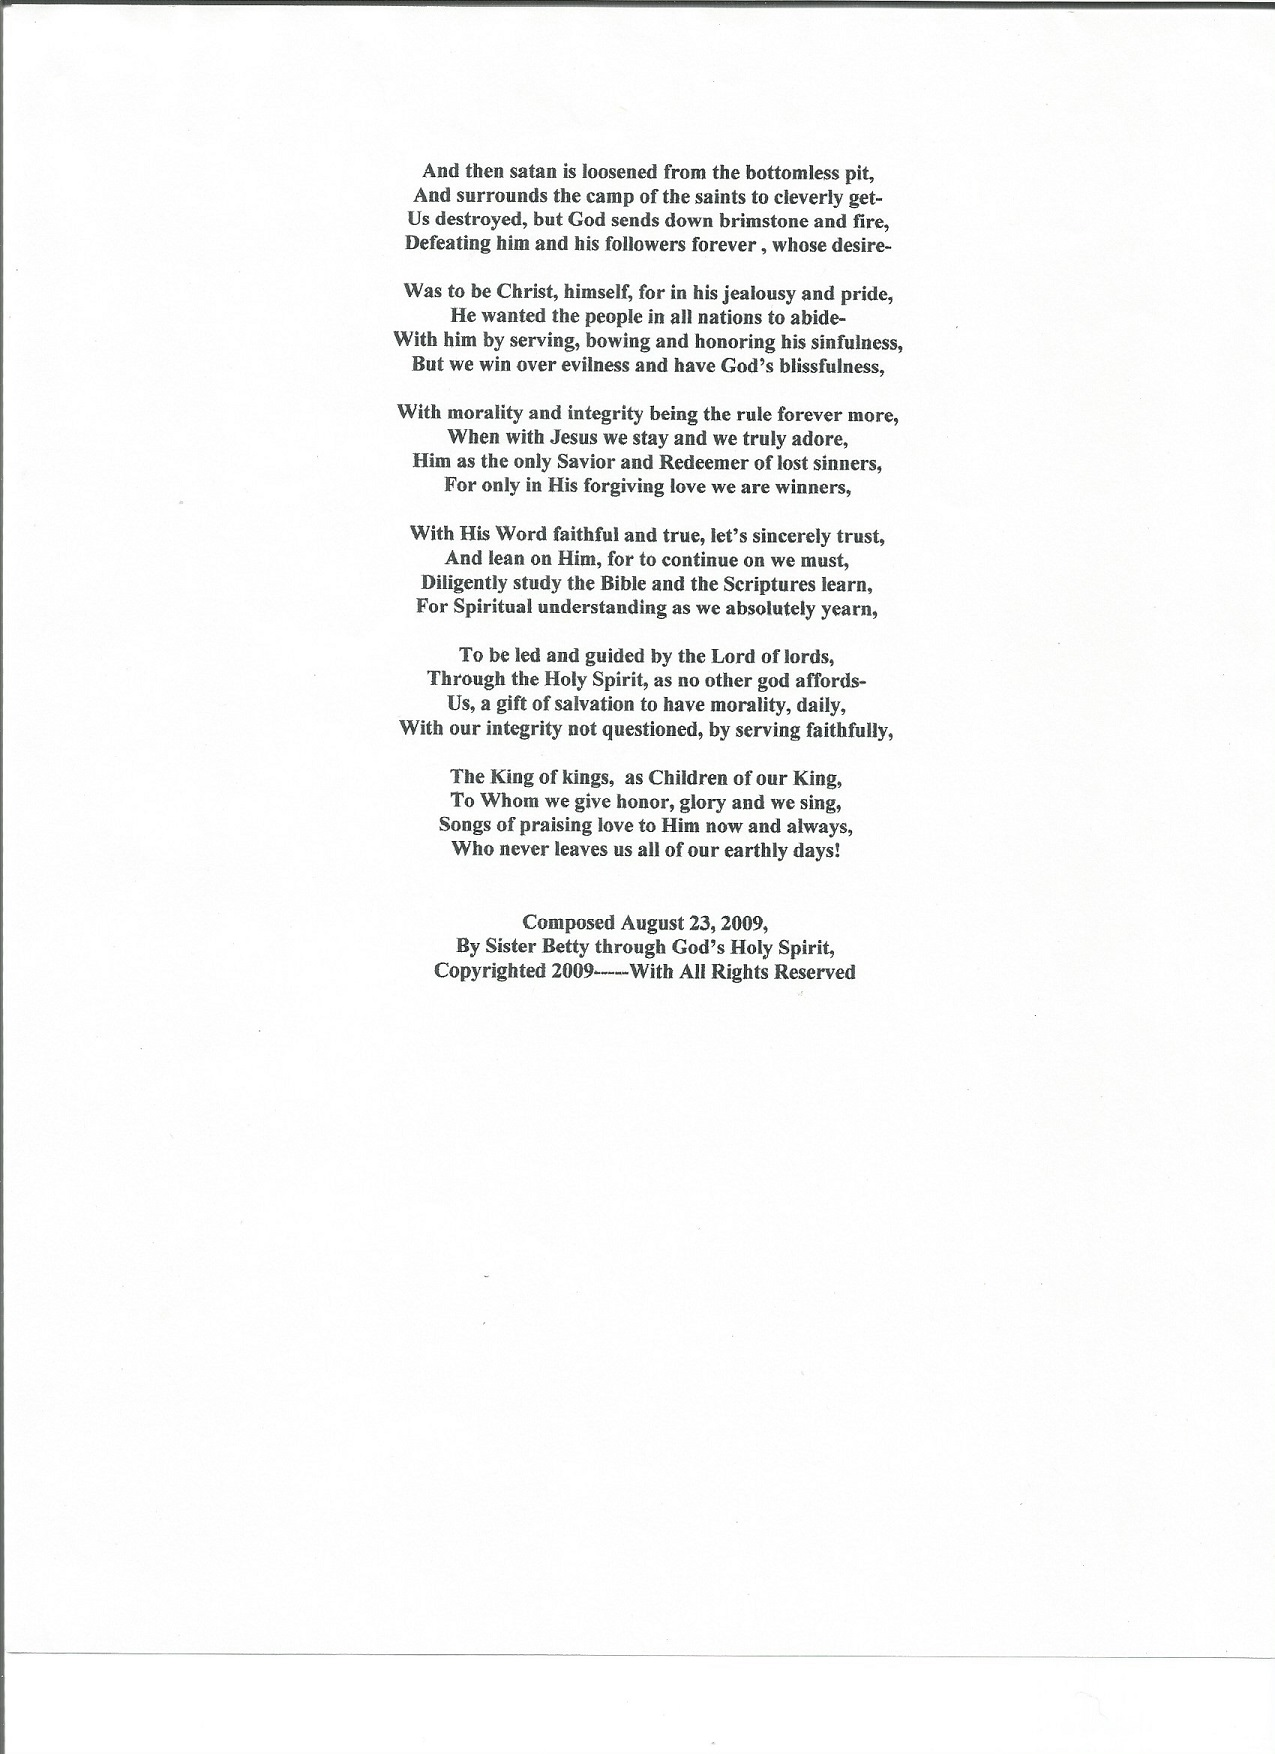 A MEMORIAL TO MORALITY....Composed August 23, 2009  Page Two.jpg